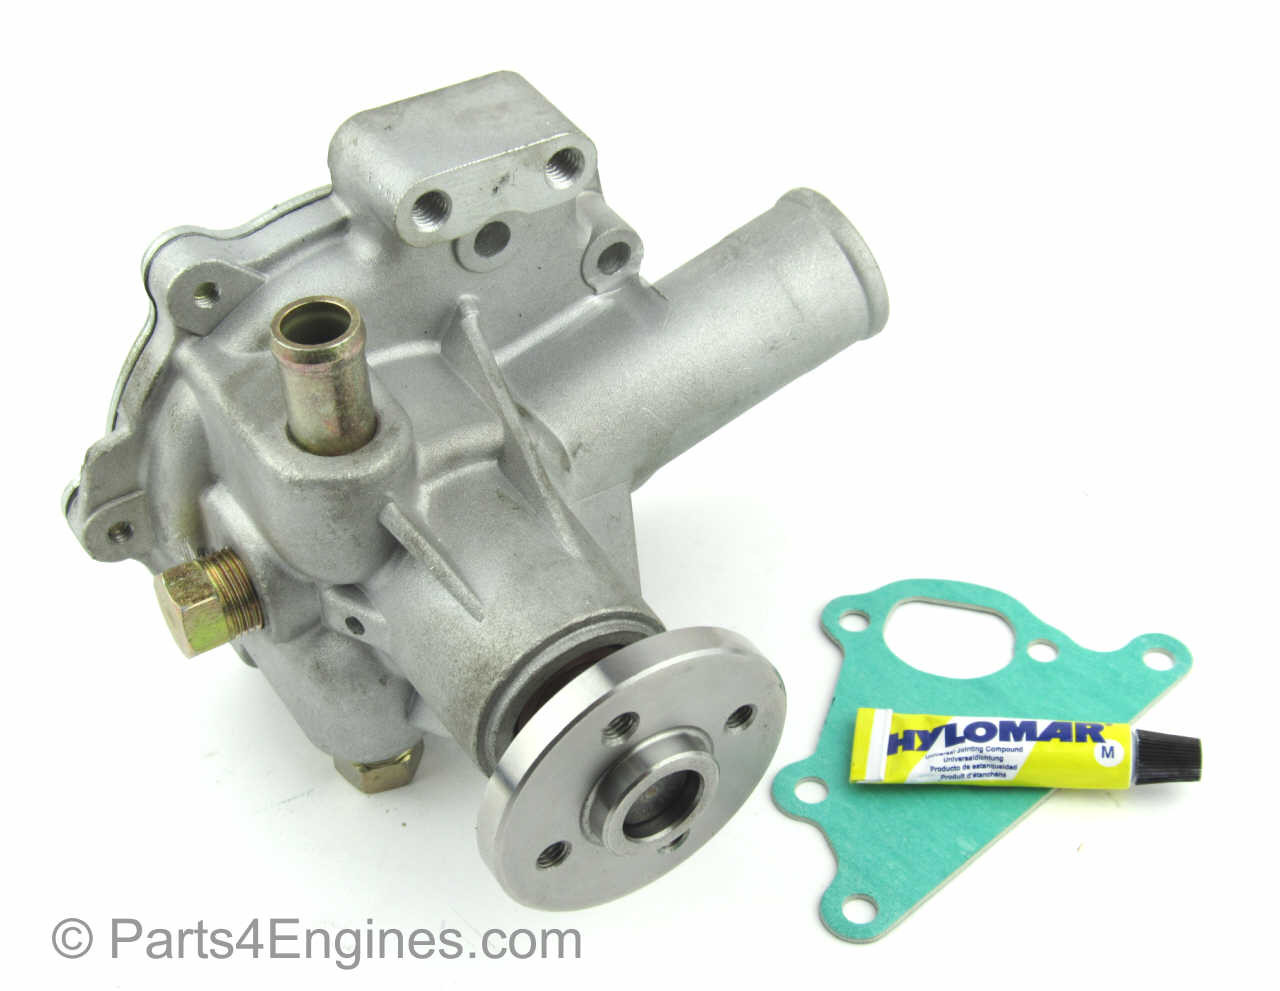 Perkins M35, MC42 KE, KF & KR engine codes - parts4engines.com